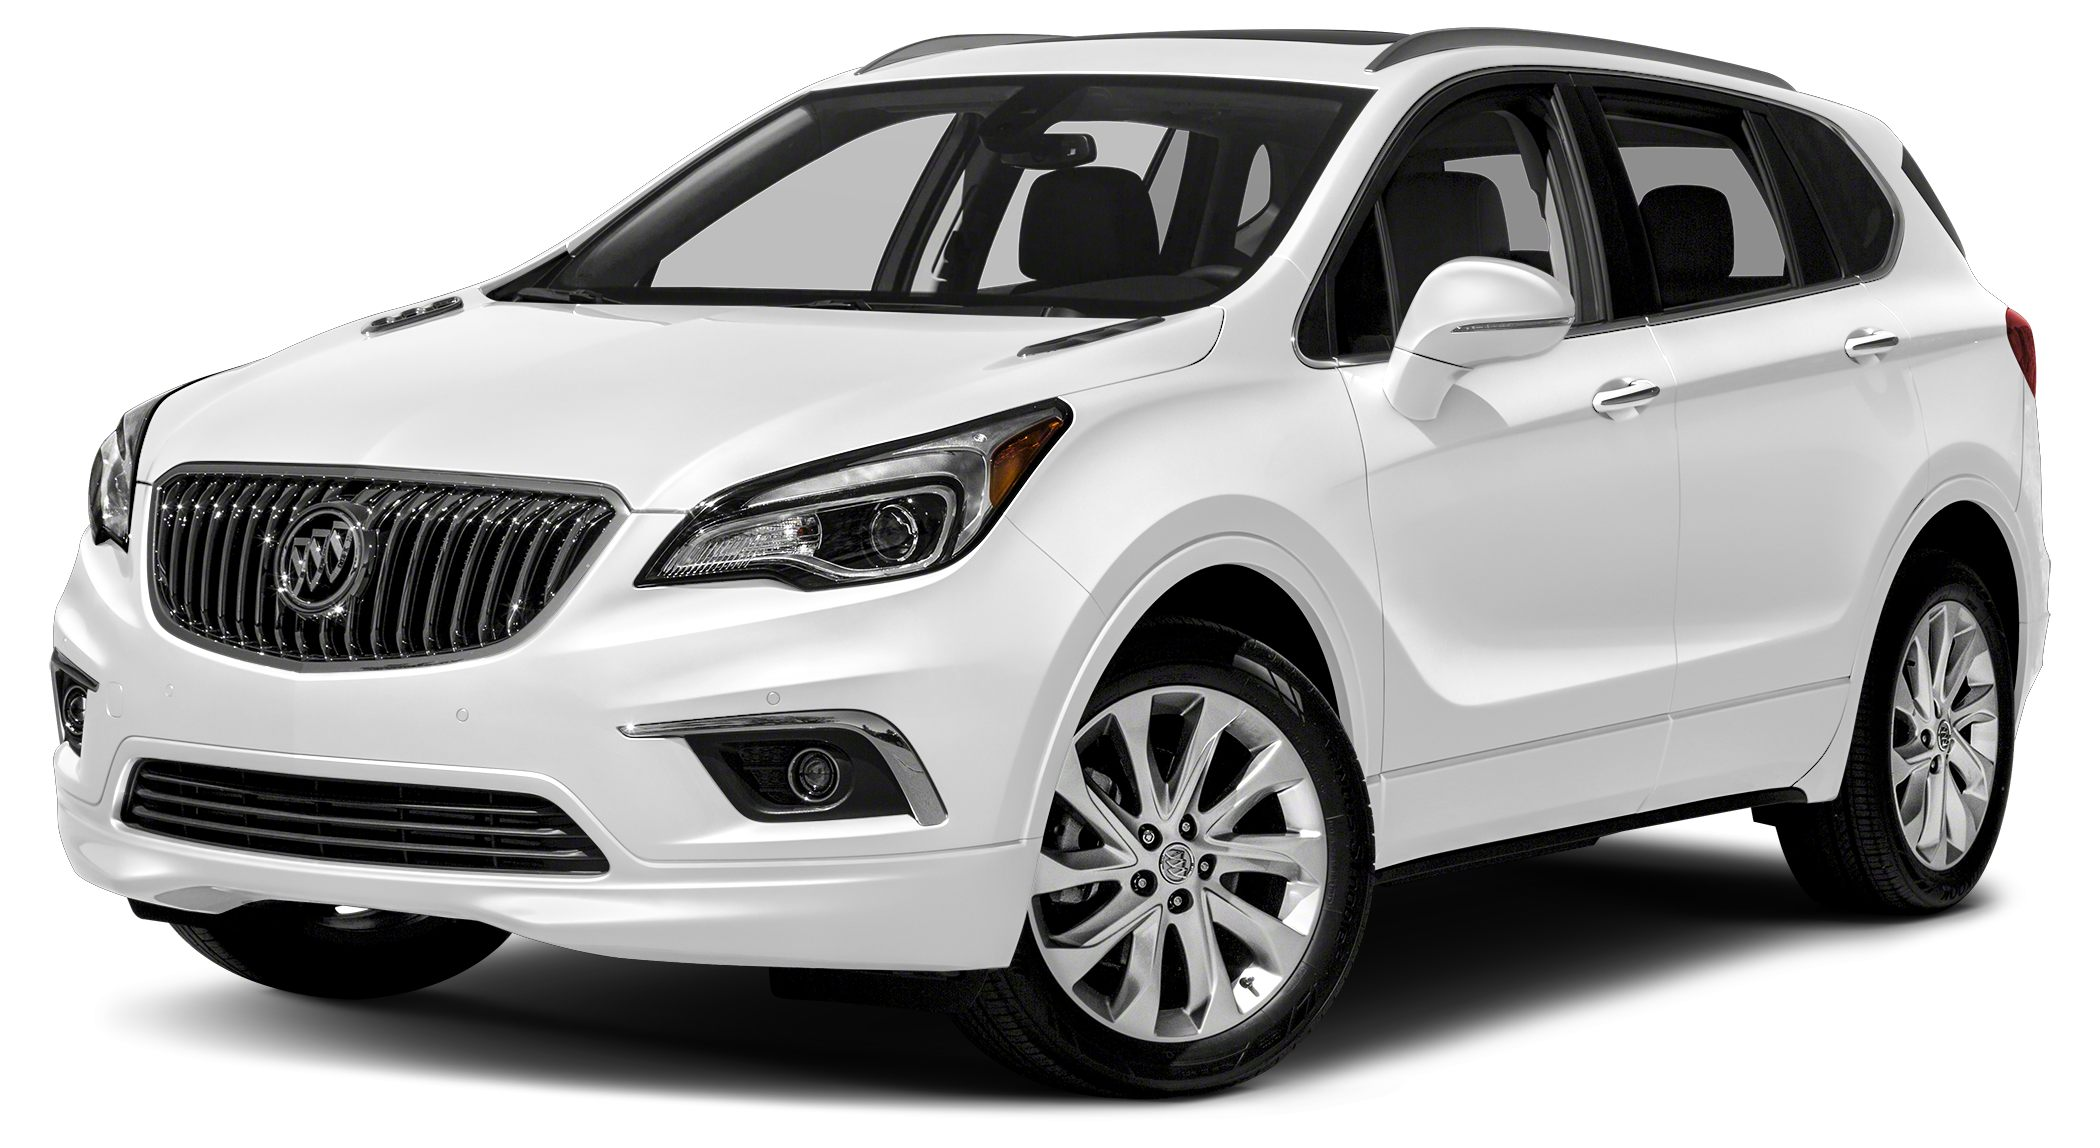 2018 Buick Envision Essence This 2018 Buick Envision Essence is complete with top-features such as